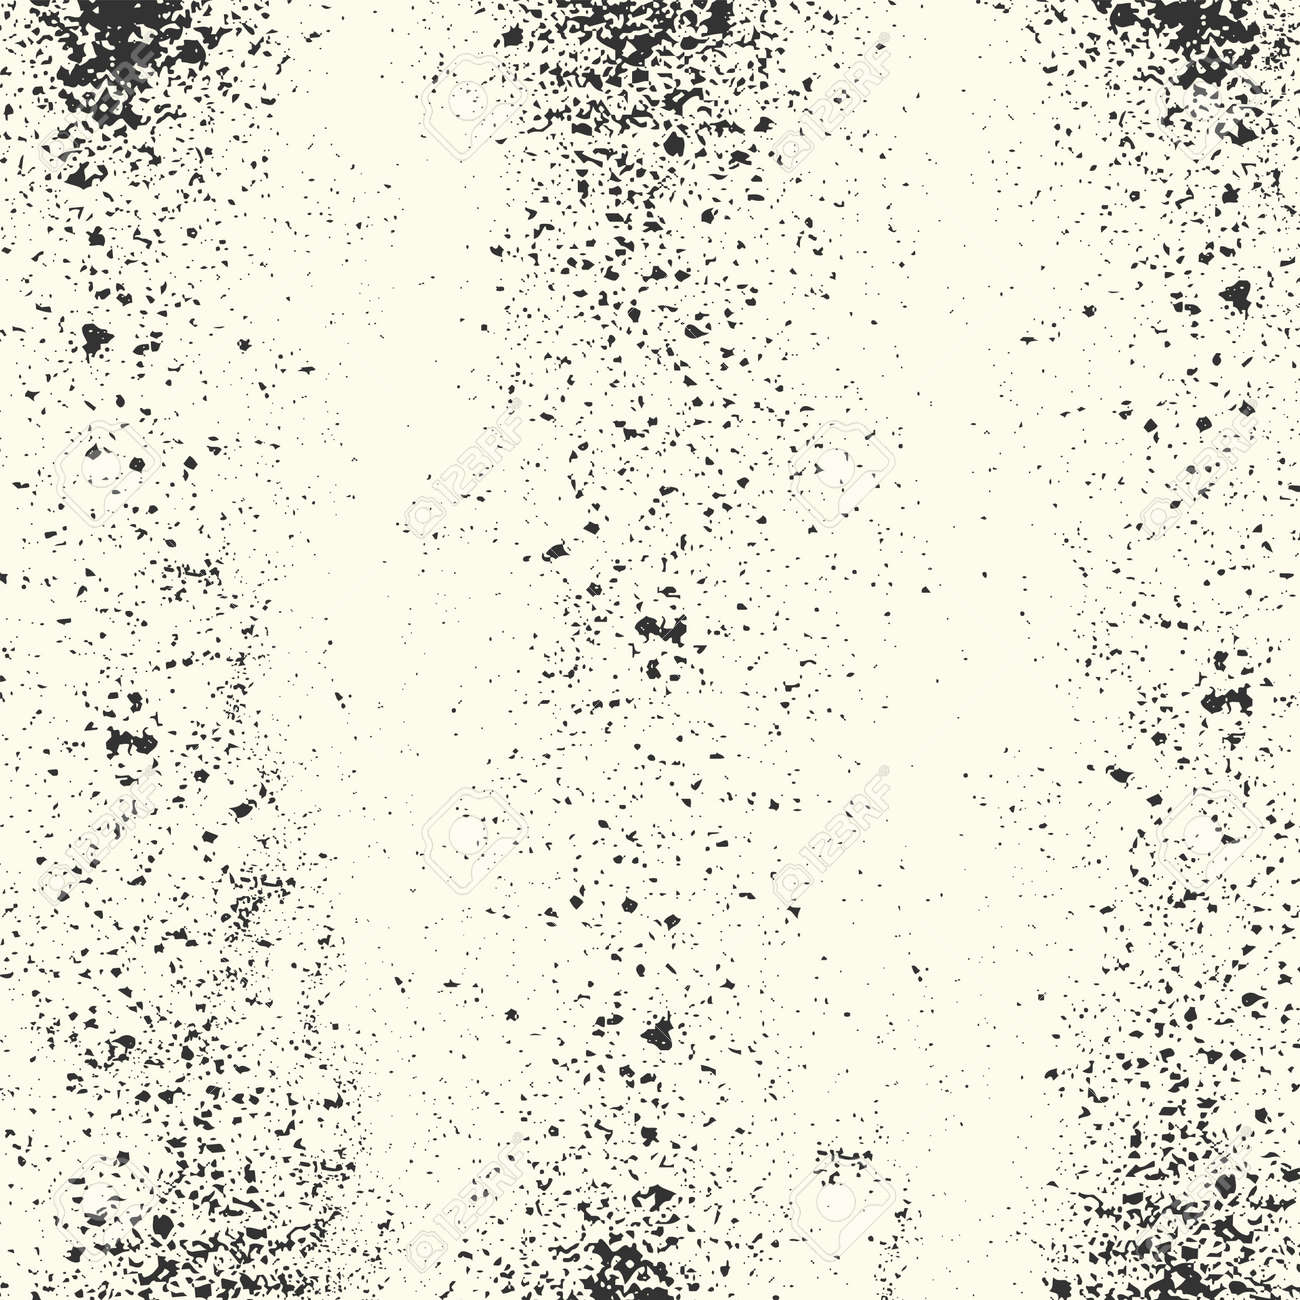 Overlay Grunge structure on white background vector - 163685309